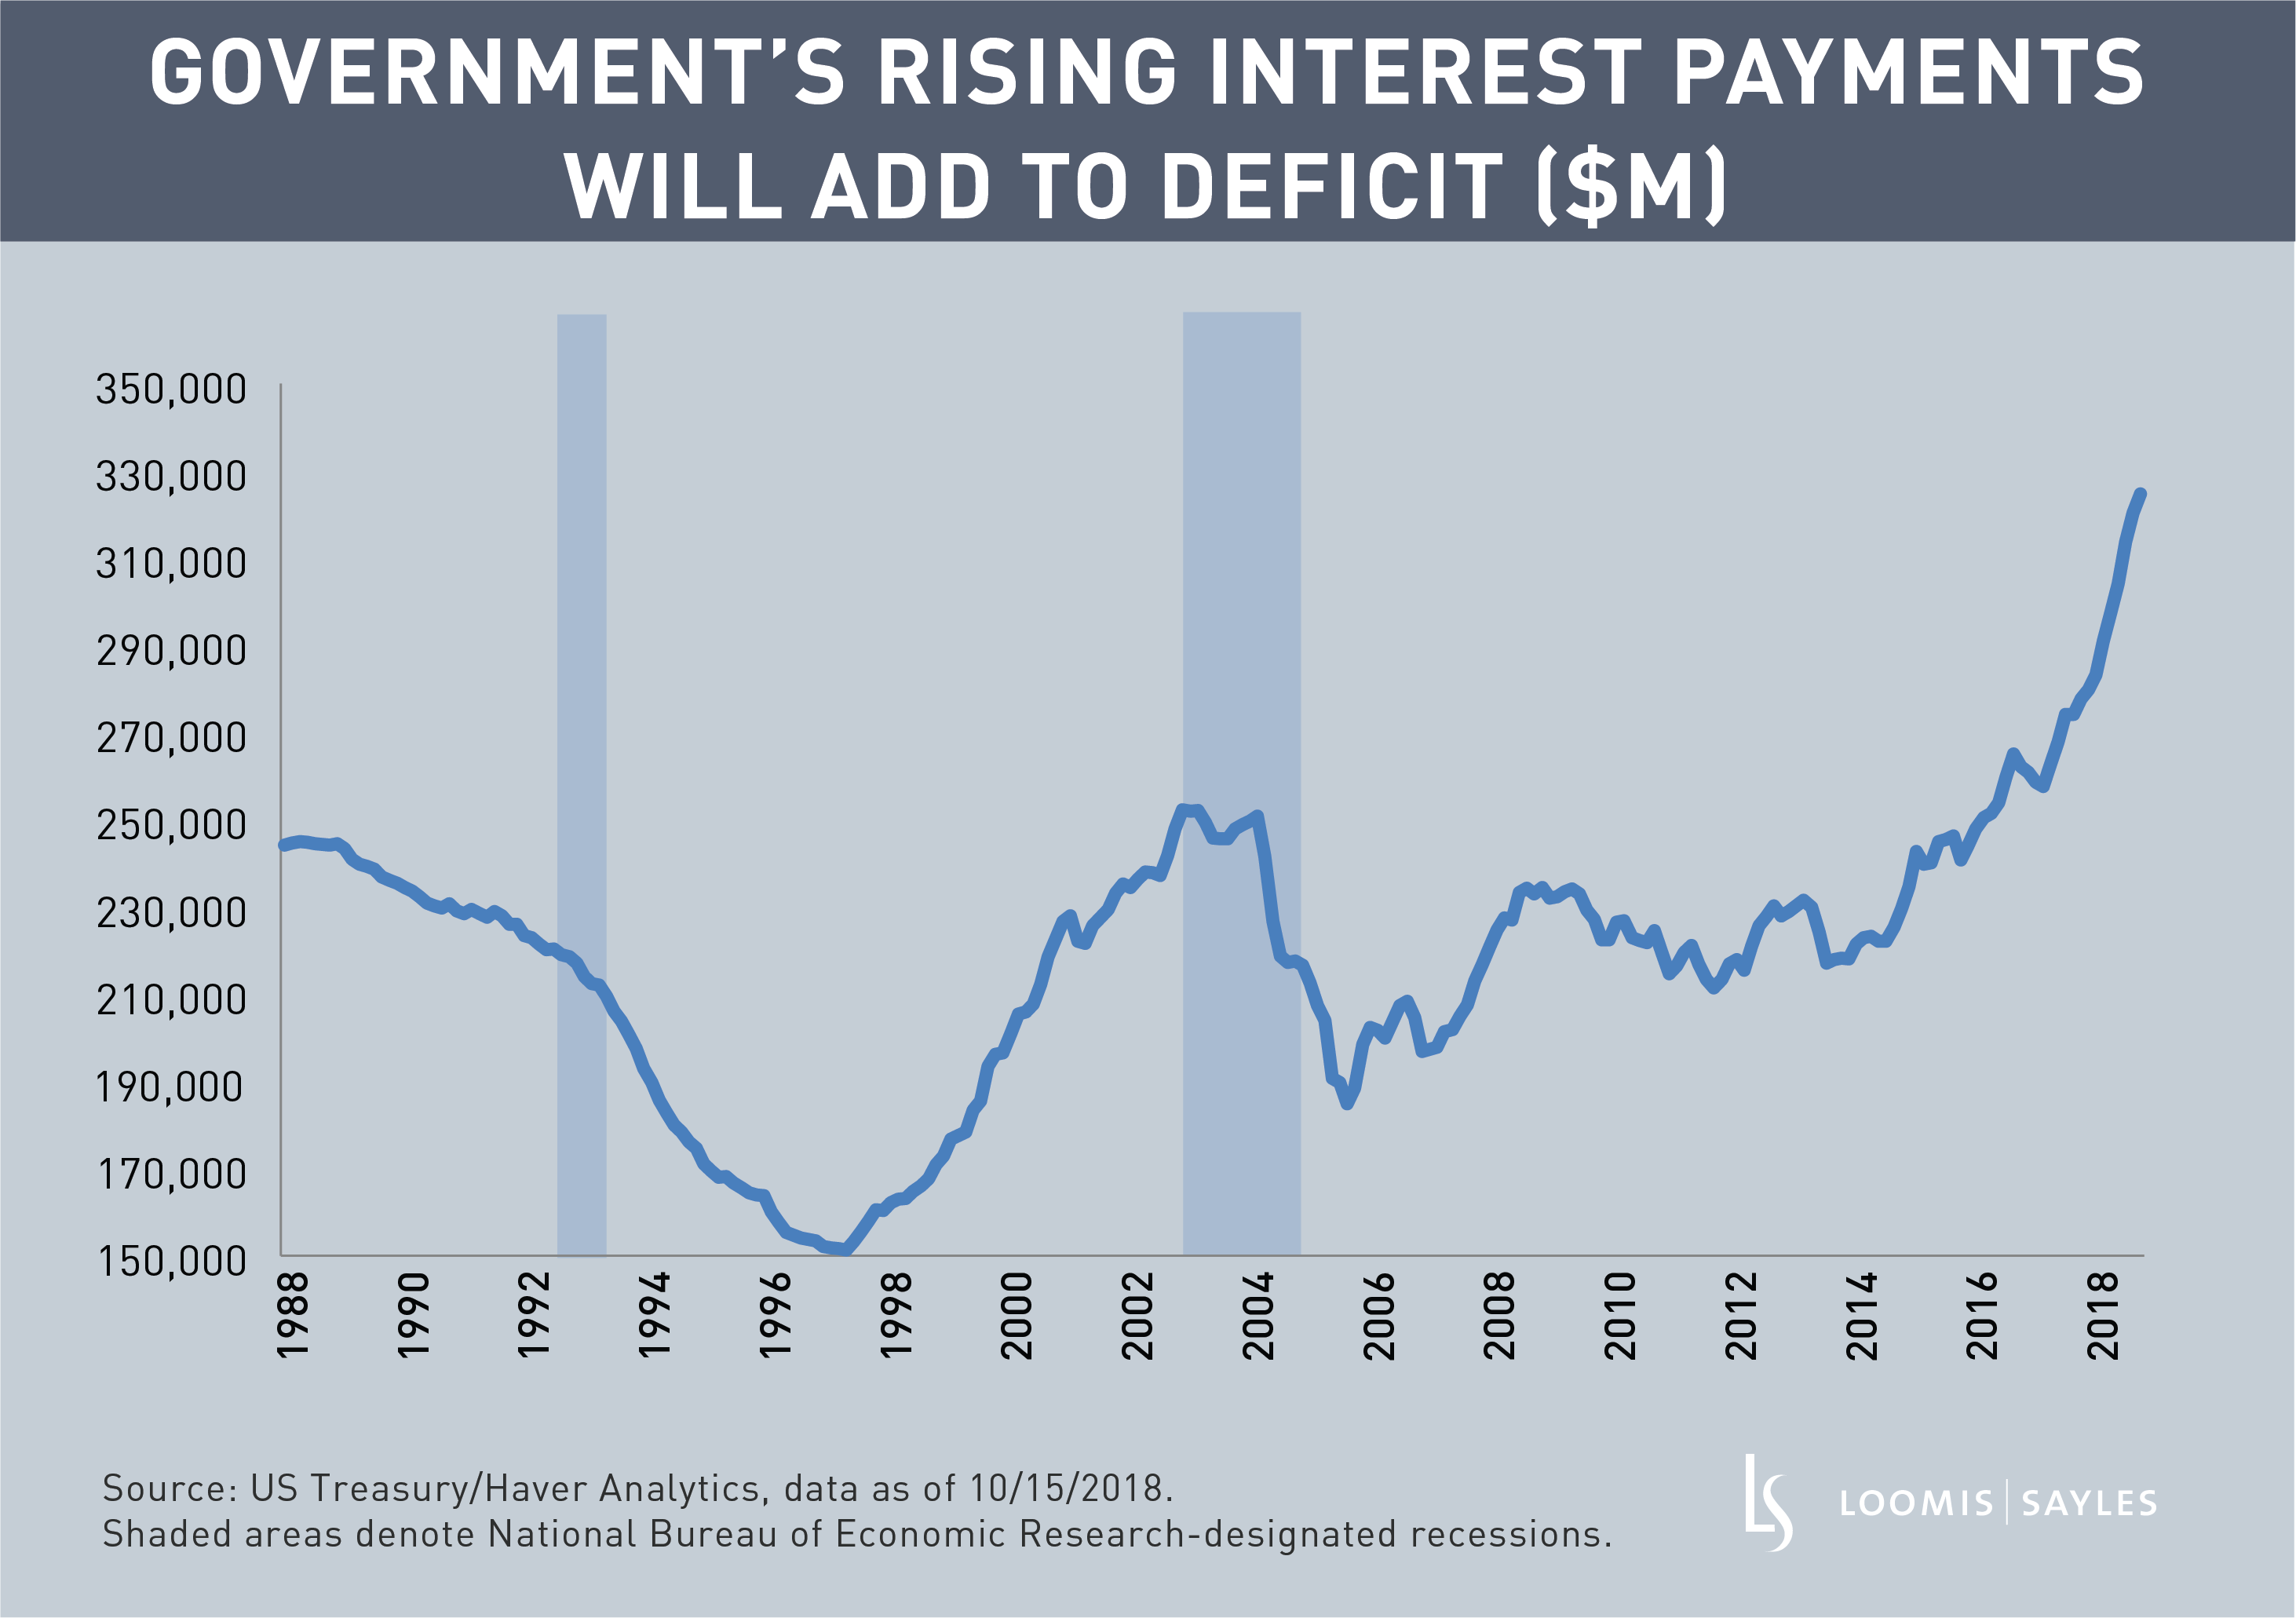 Government's Rising Interest Payments Will Add to Deficitv2